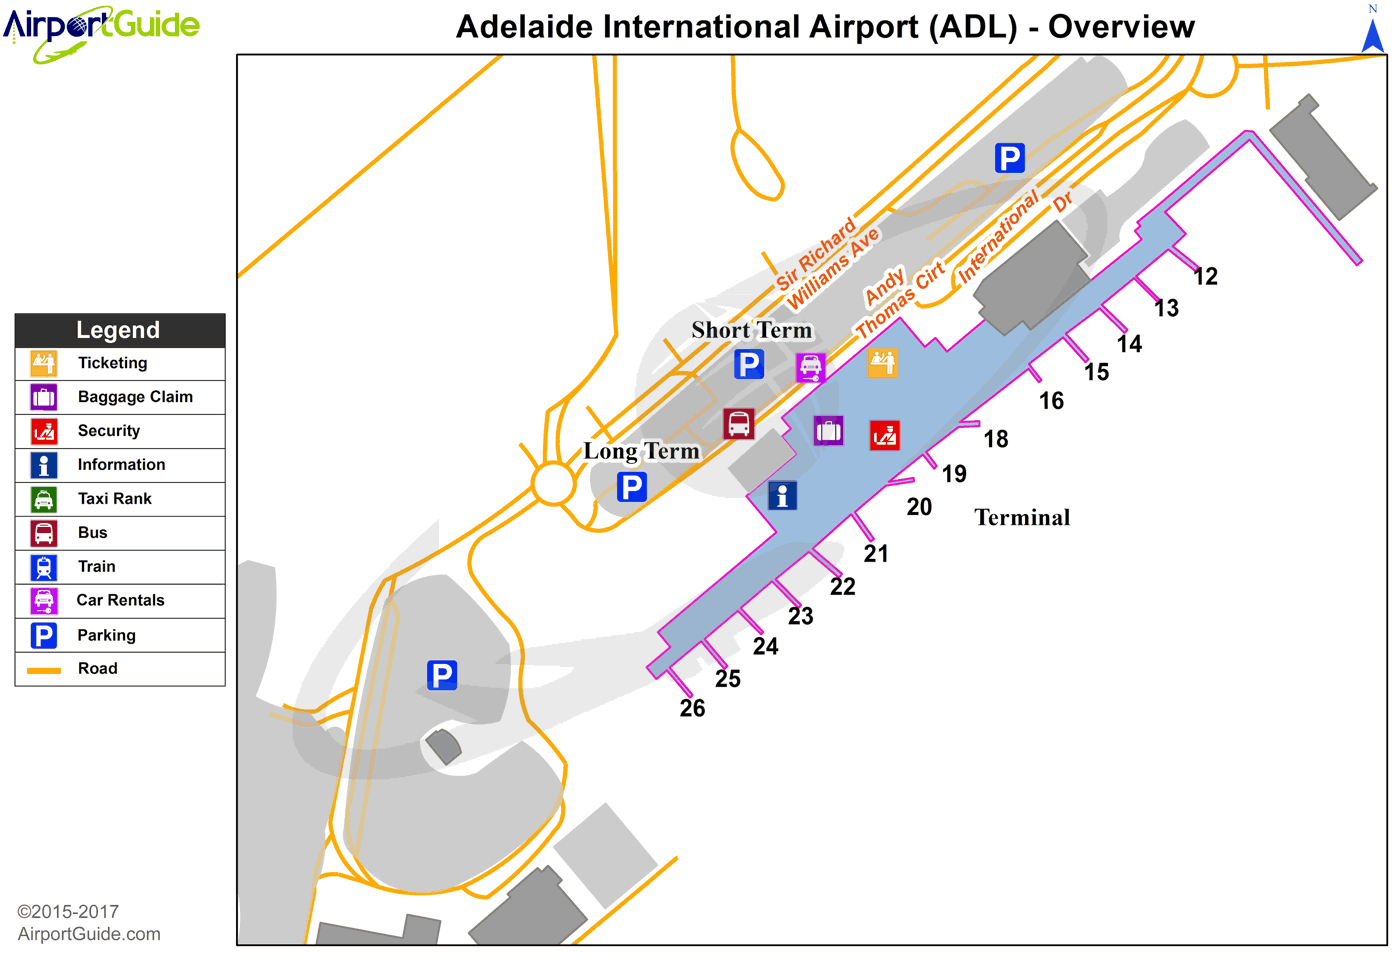 Adelaide - Adelaide International (ADL) Airport Terminal Map - Overview